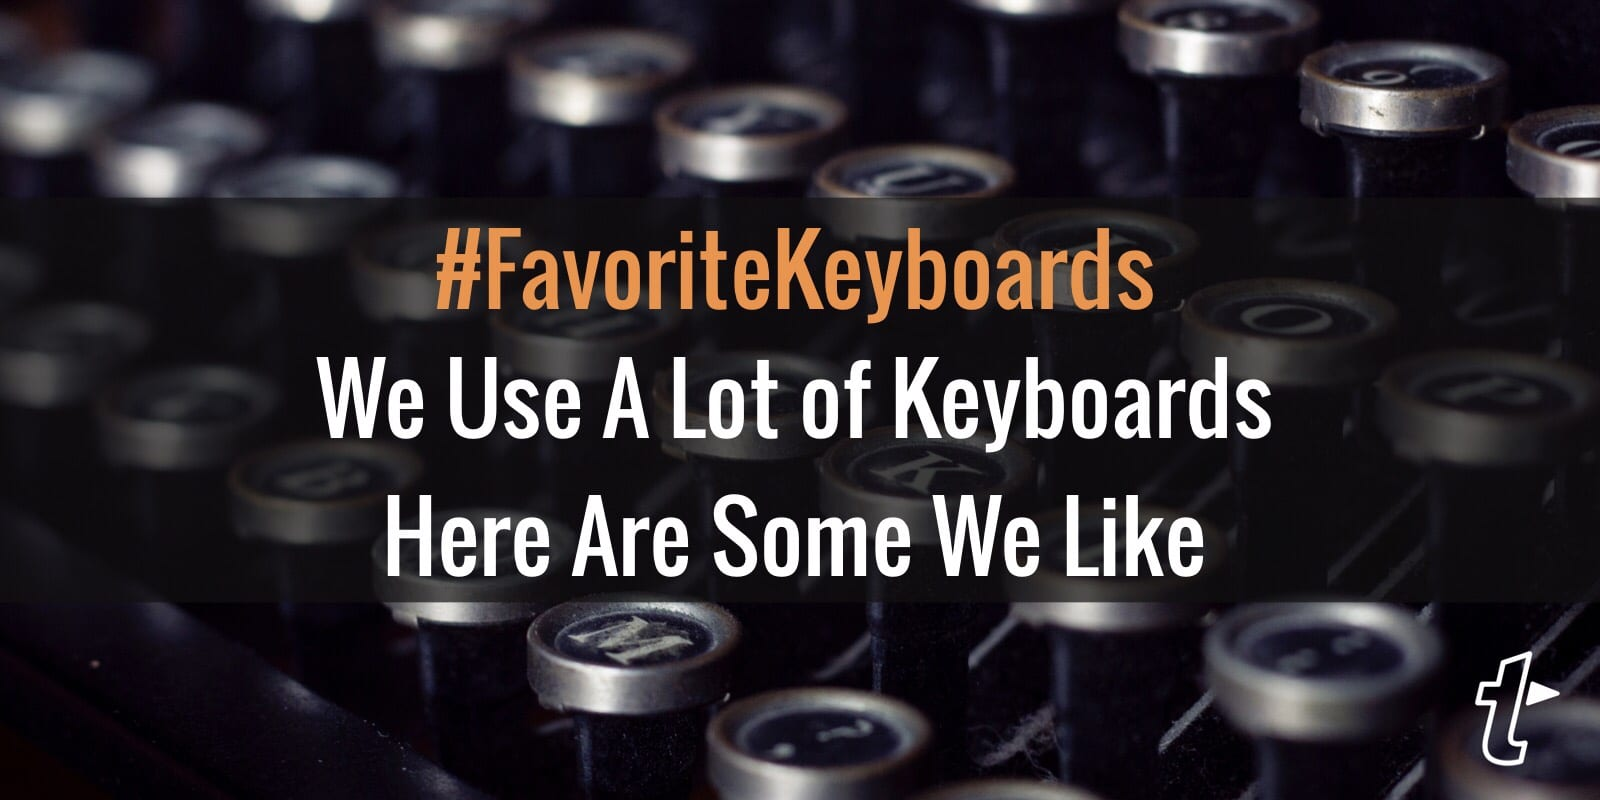 Our Favorite Keyboards for Mac, PC, Chrome, iPad, and iPhone